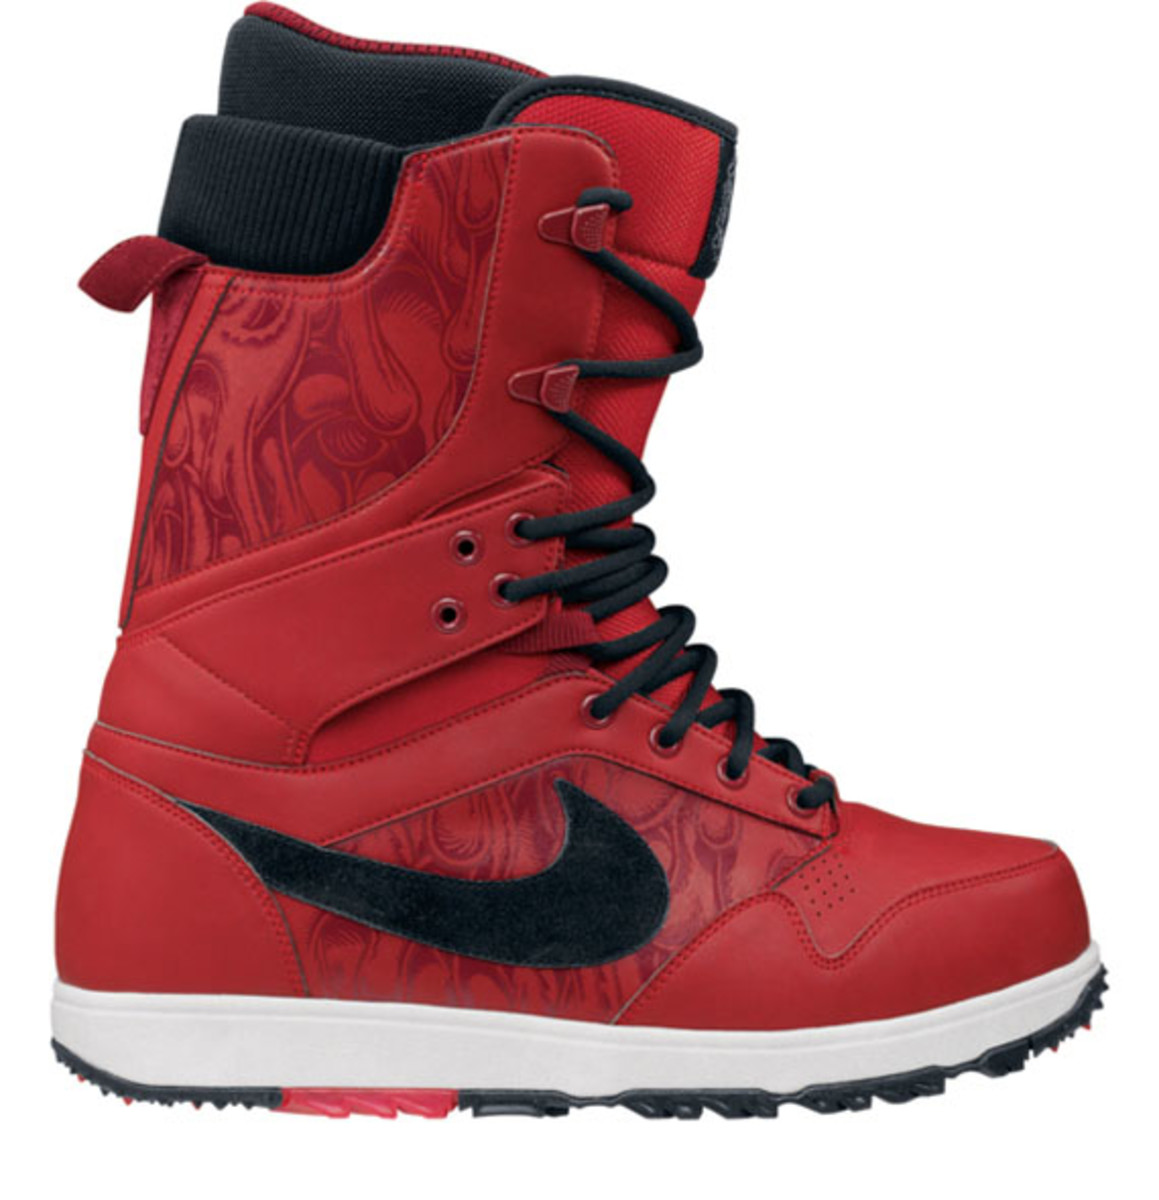 nike-snowboarding-boots-2